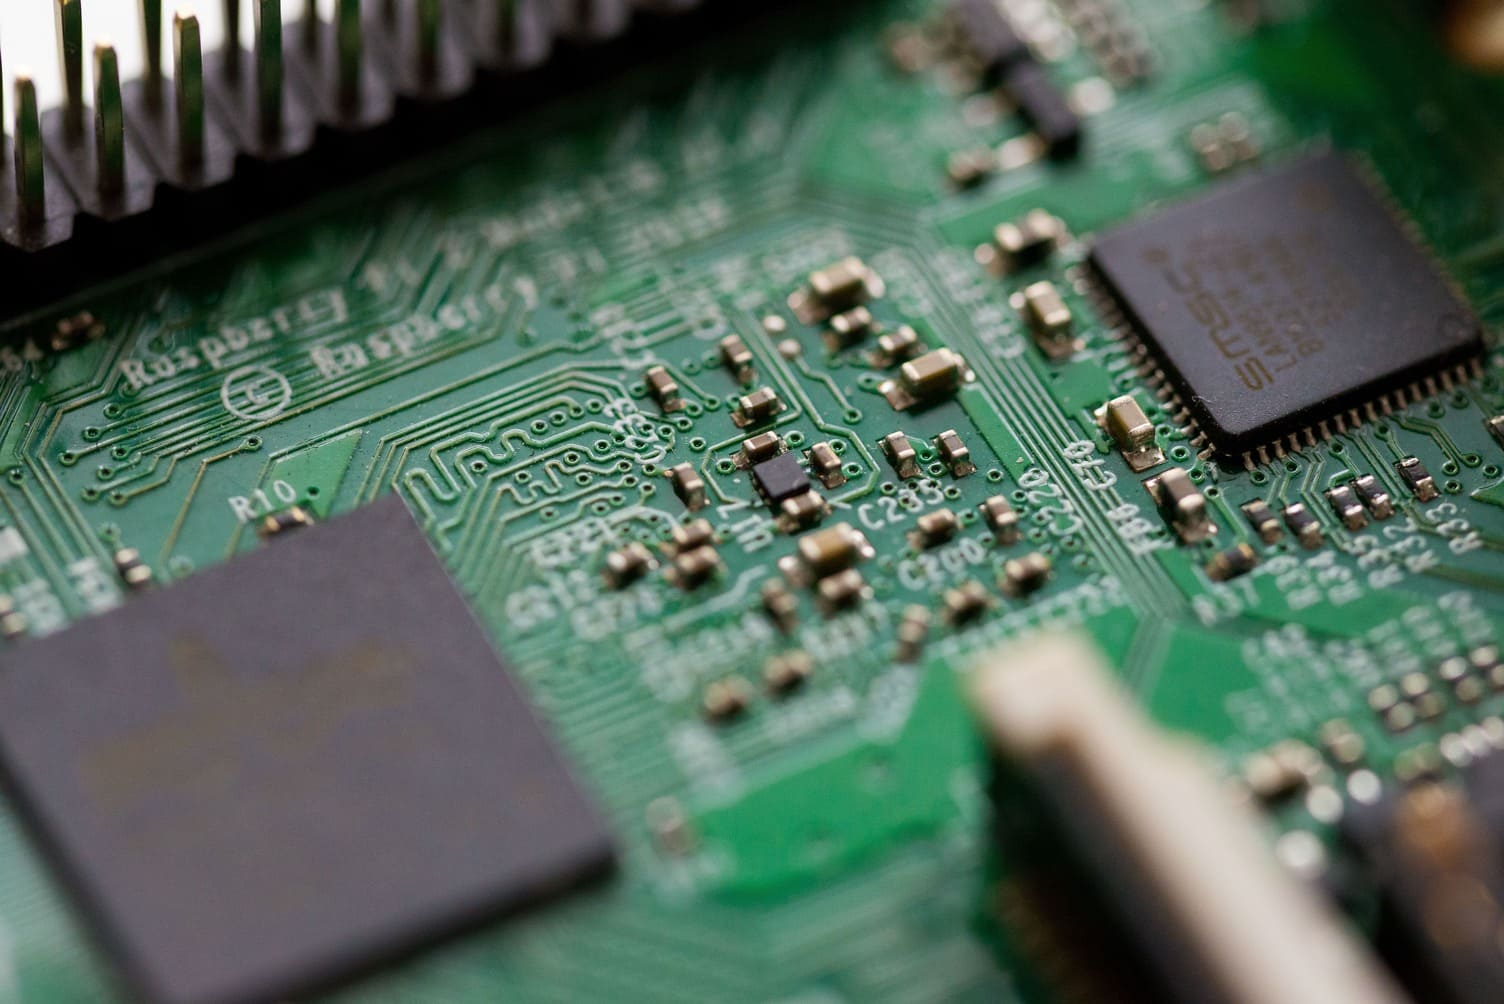 conformal-coating-to-protect-pcbs